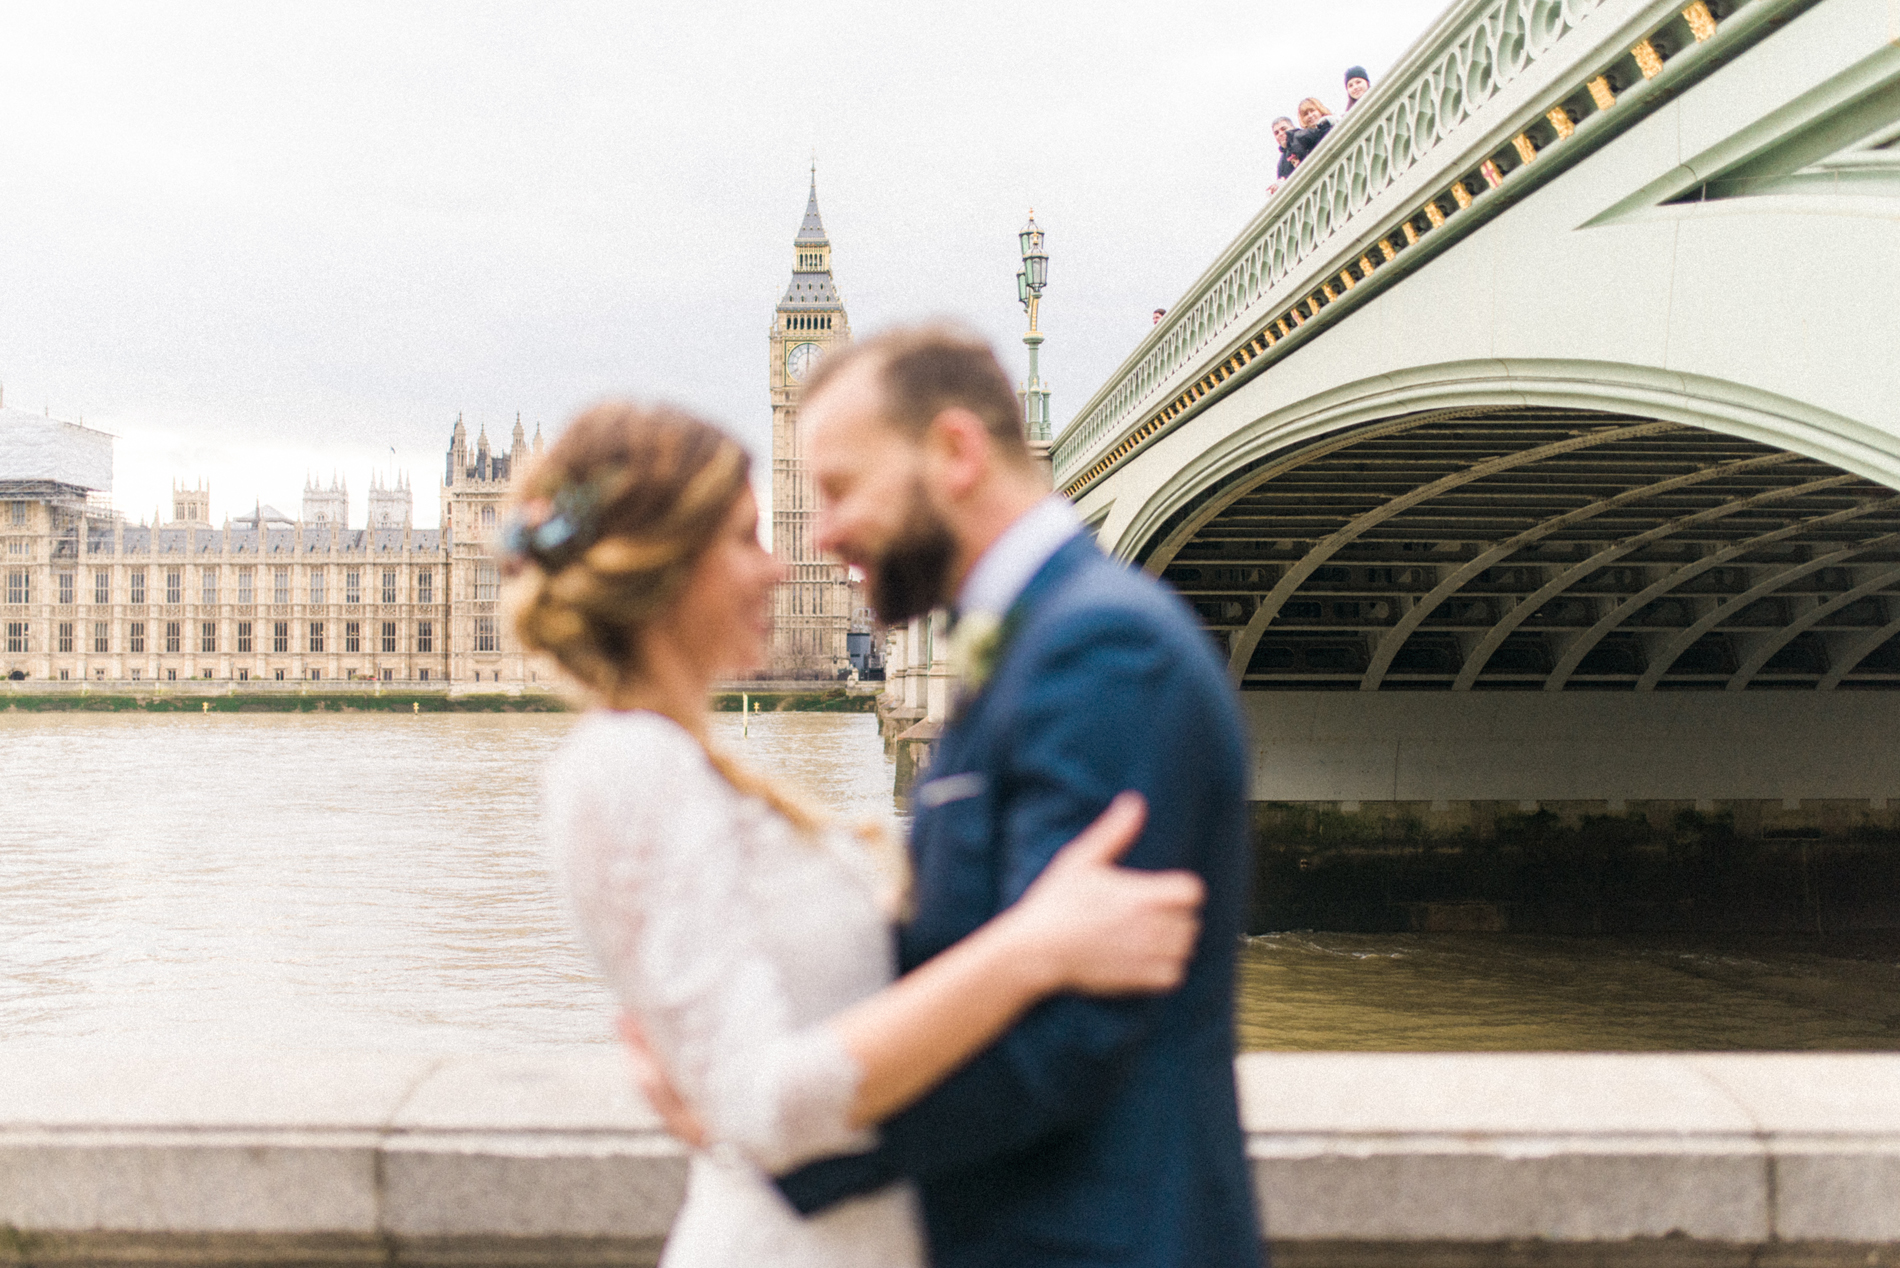 Modern-Vintage London Wedding - A Styled London Elopement - Adriana Morais Fotografia